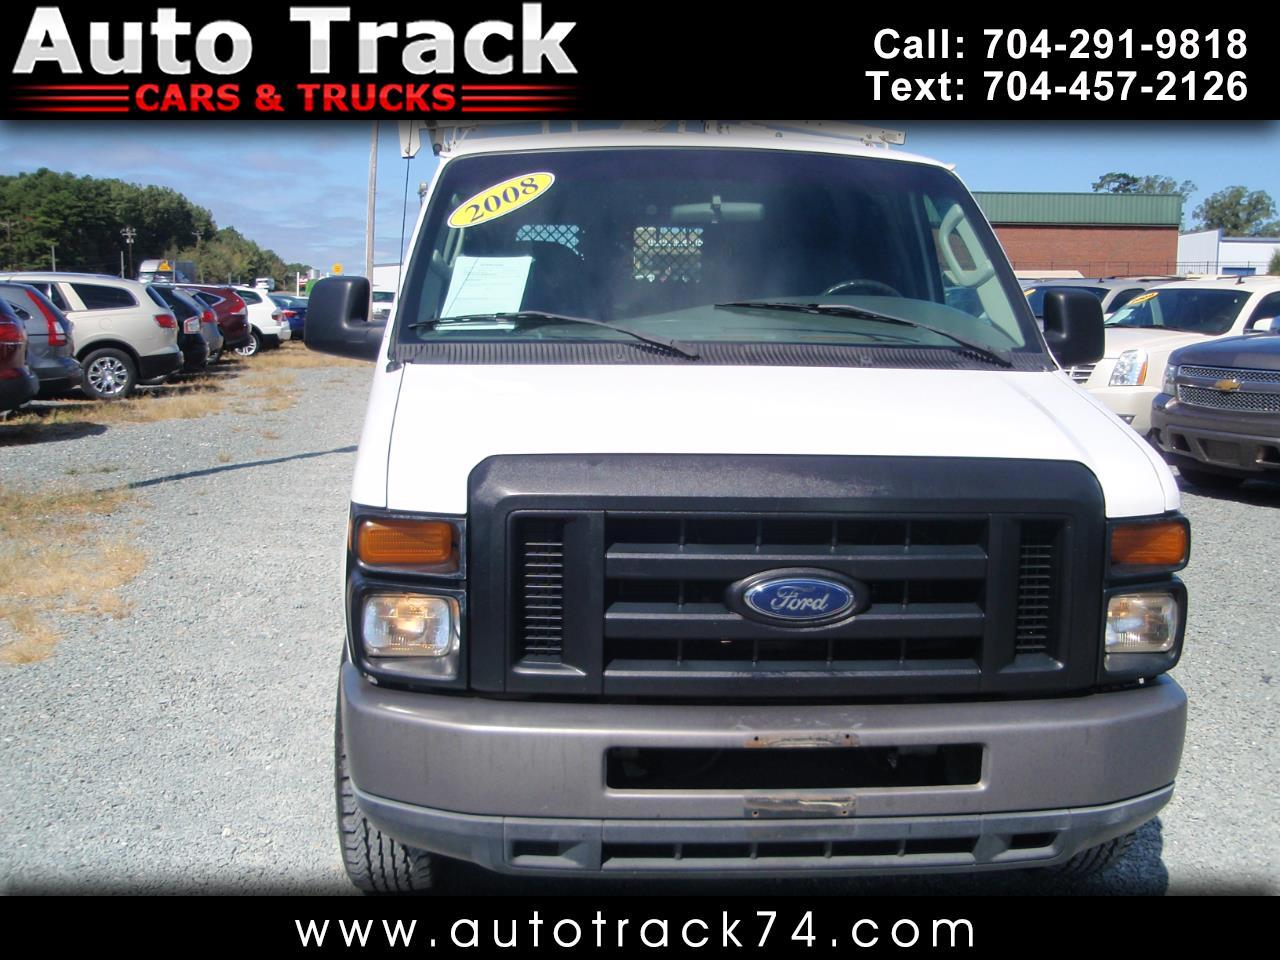 2008 Ford Econoline Cargo Van E-250 Recreational